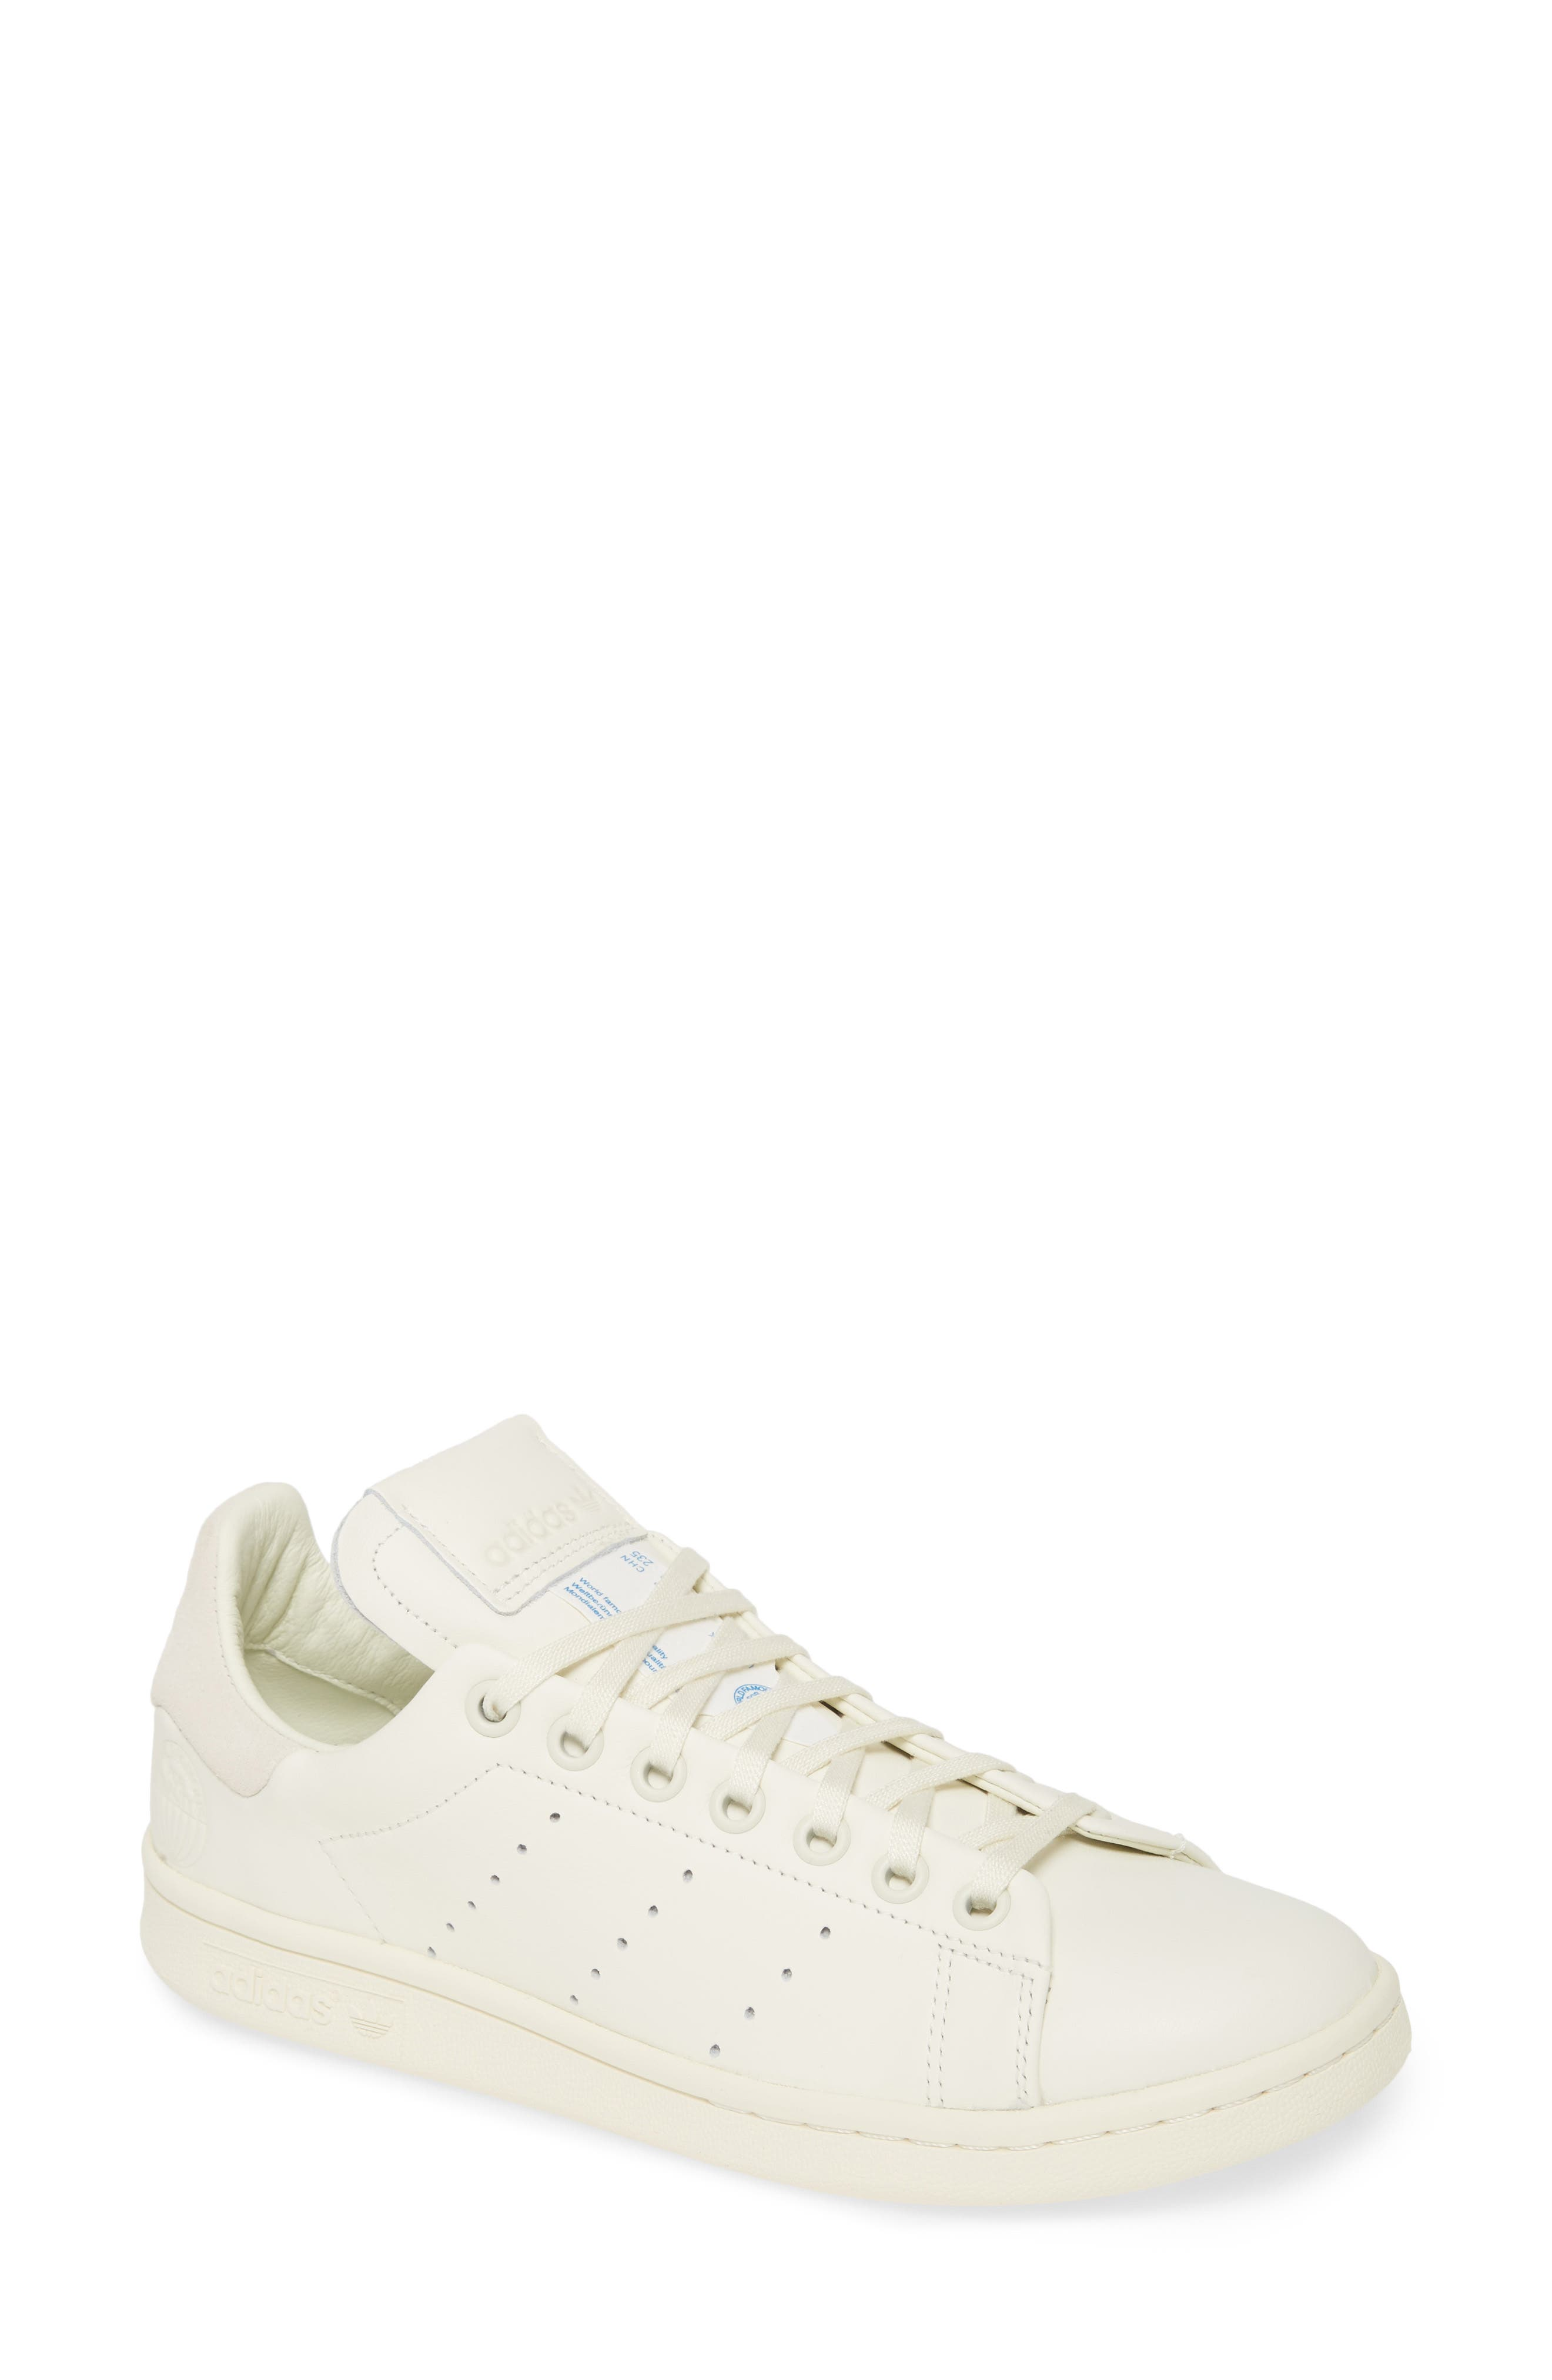 adidas stan smith white raw pink rose gold exclusive